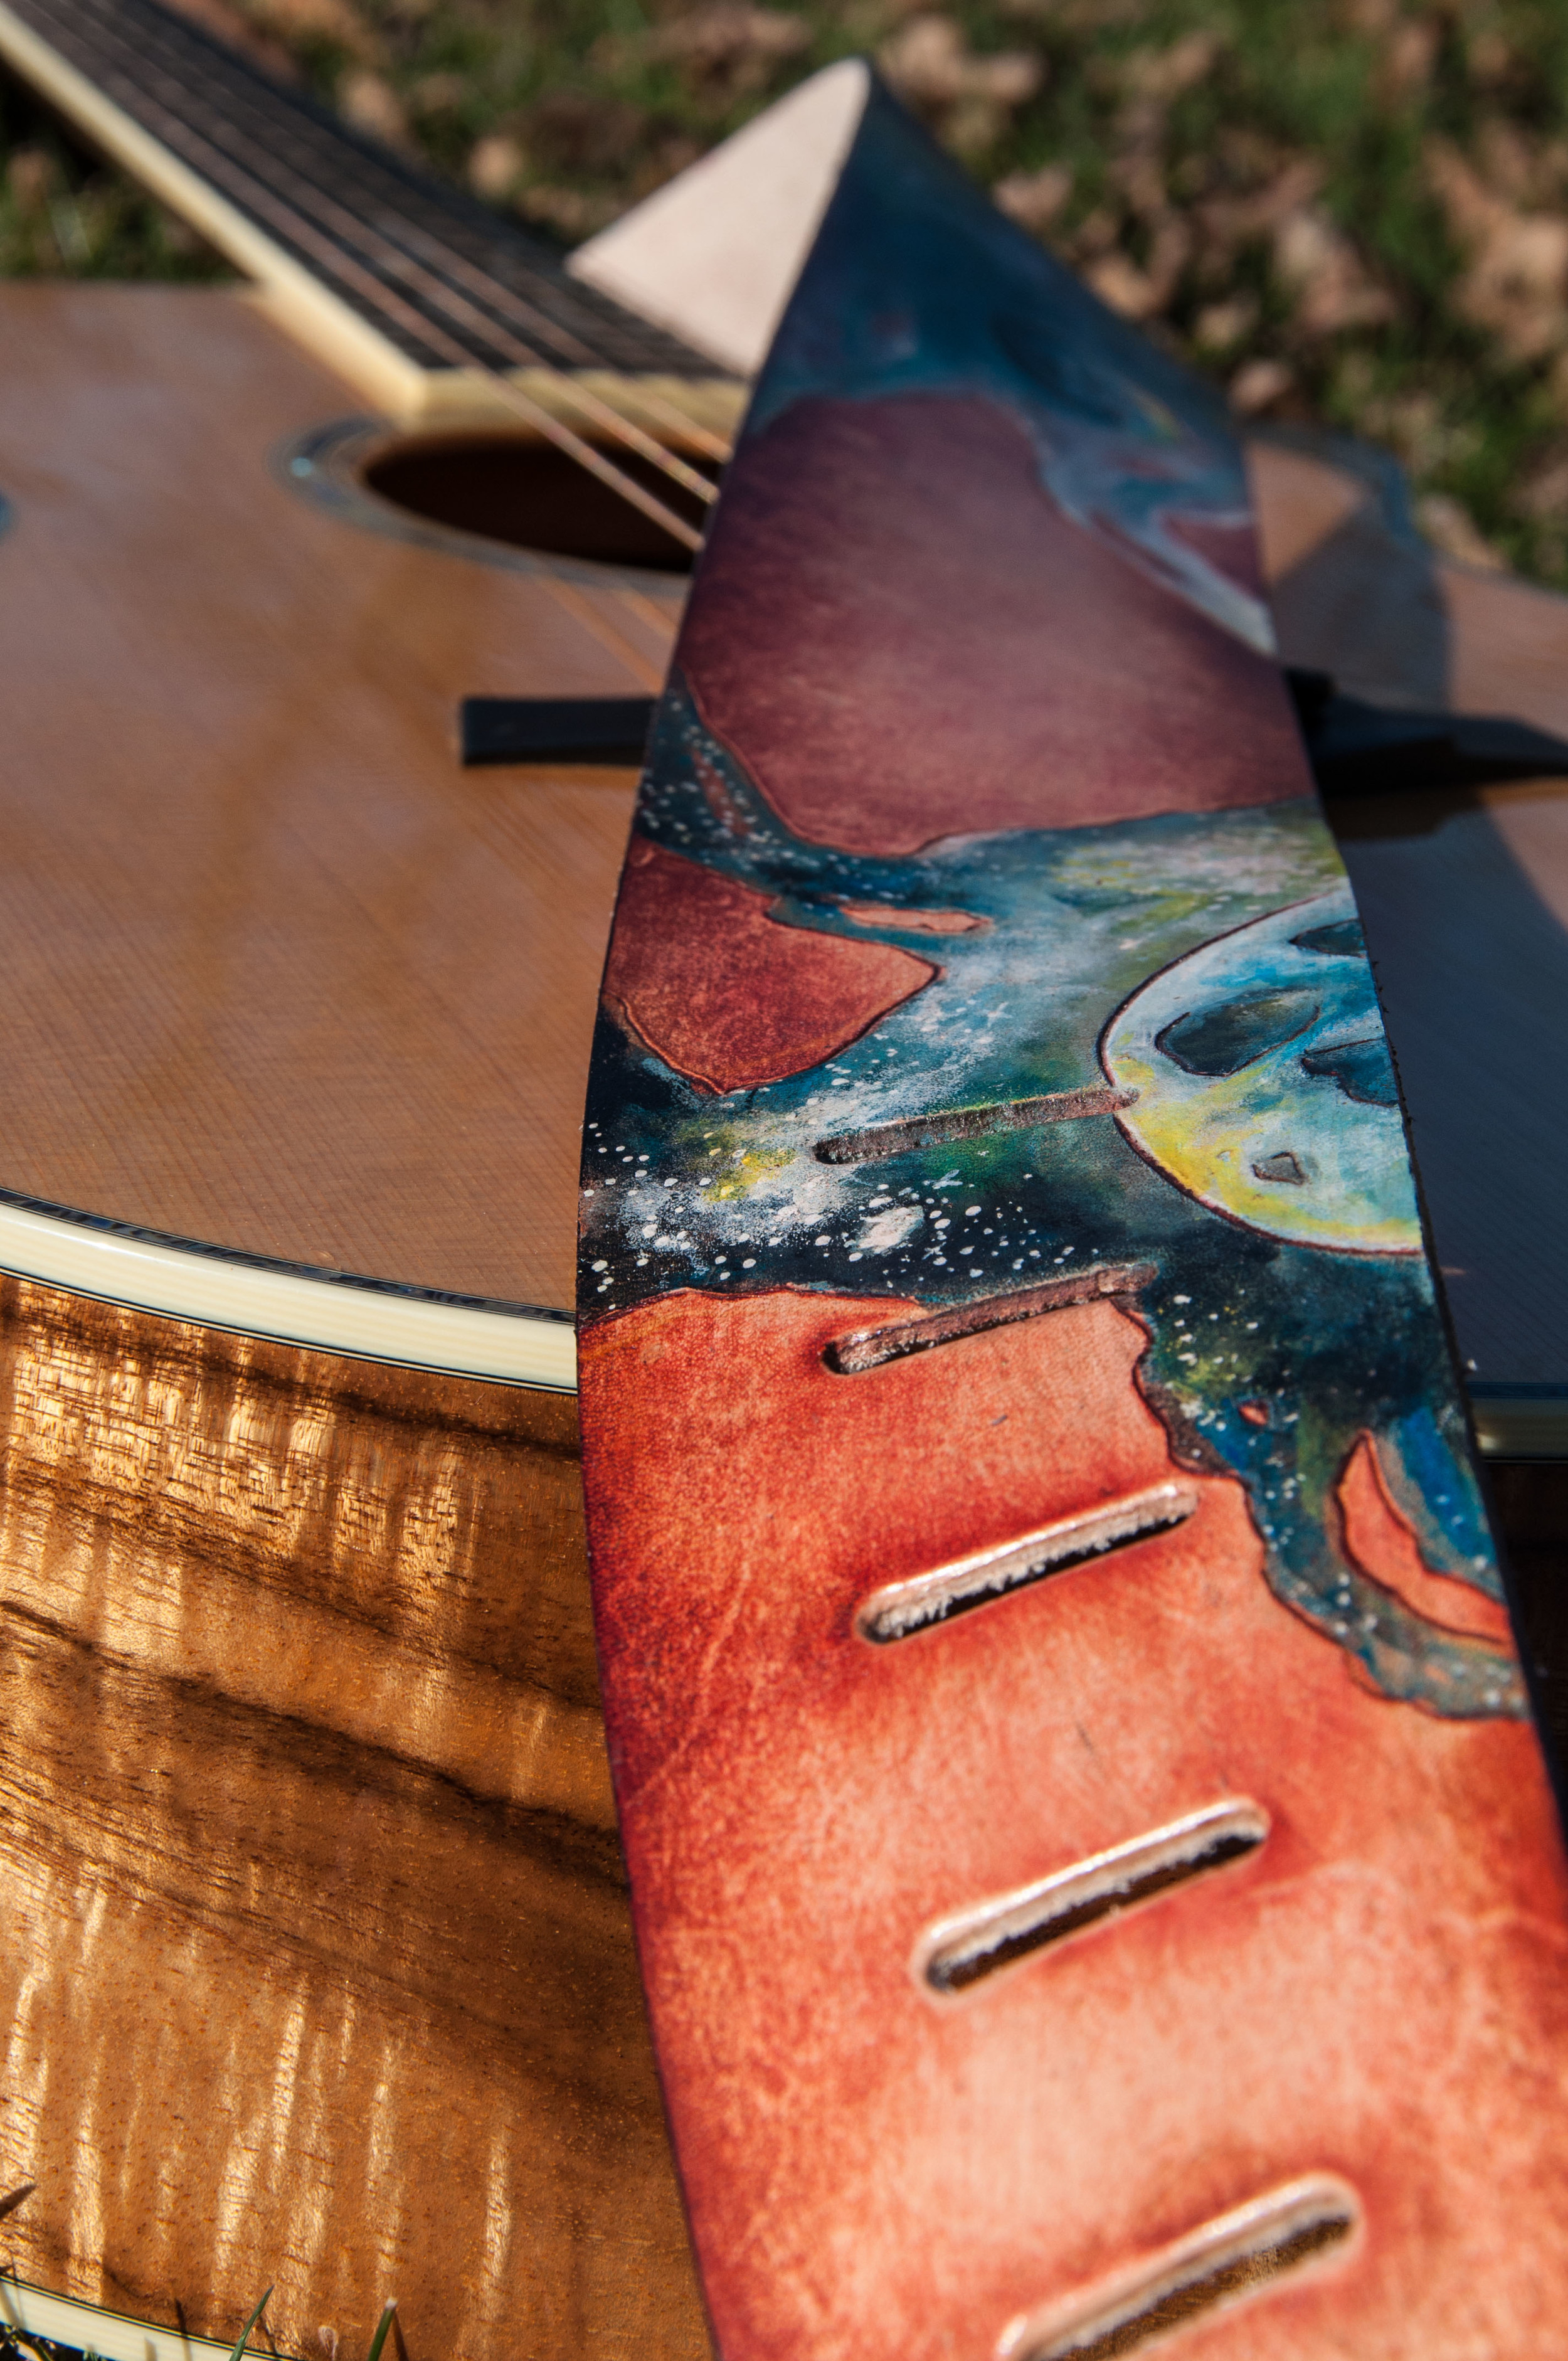 custom-leather-psychadelic-planets-guitar-strap-2.jpg